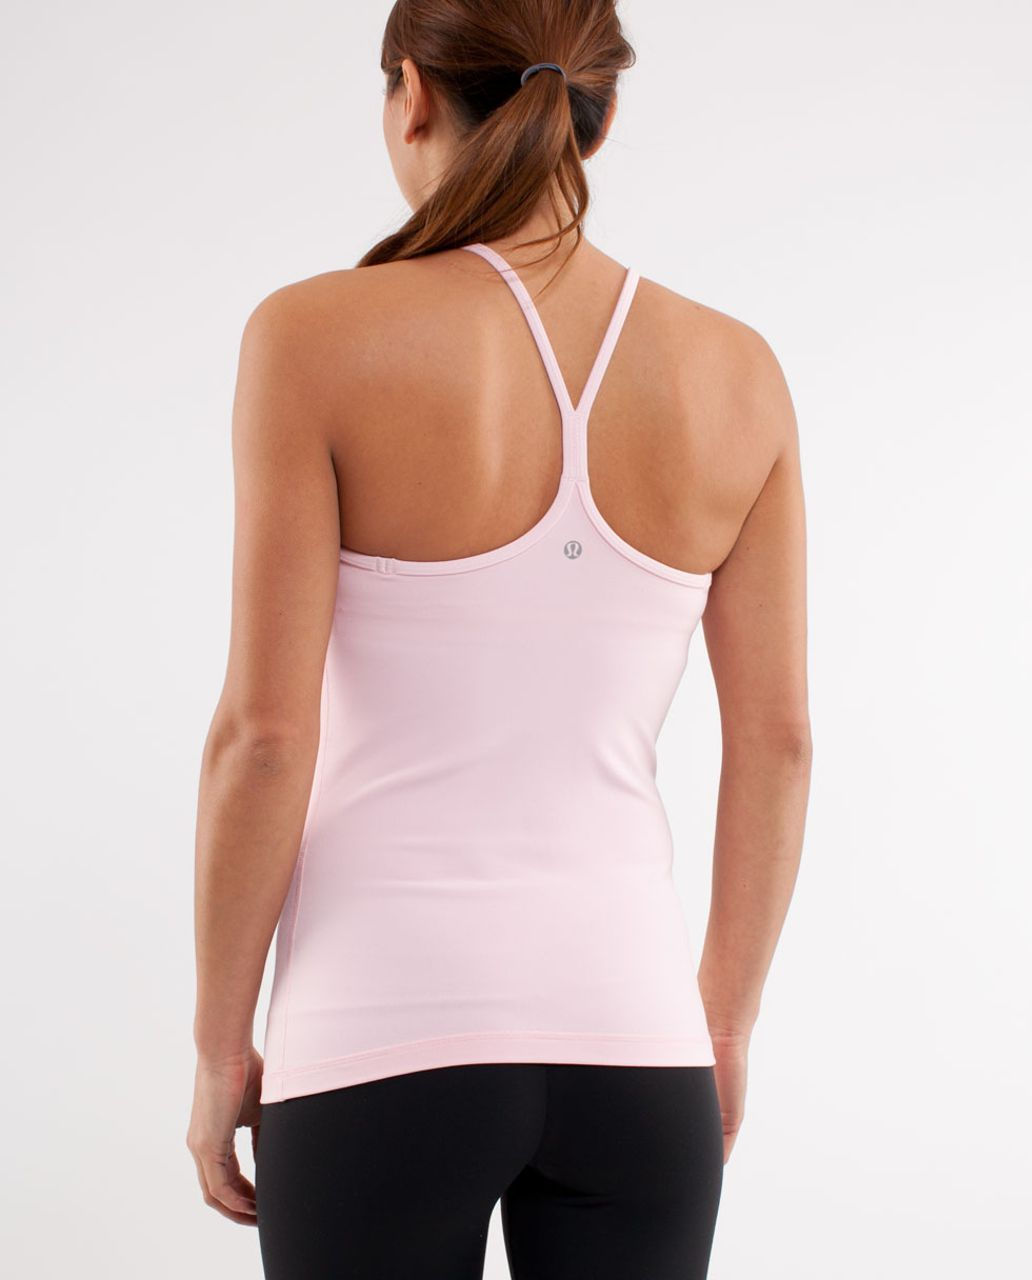 Lululemon Power Y Tank - Pig Pink